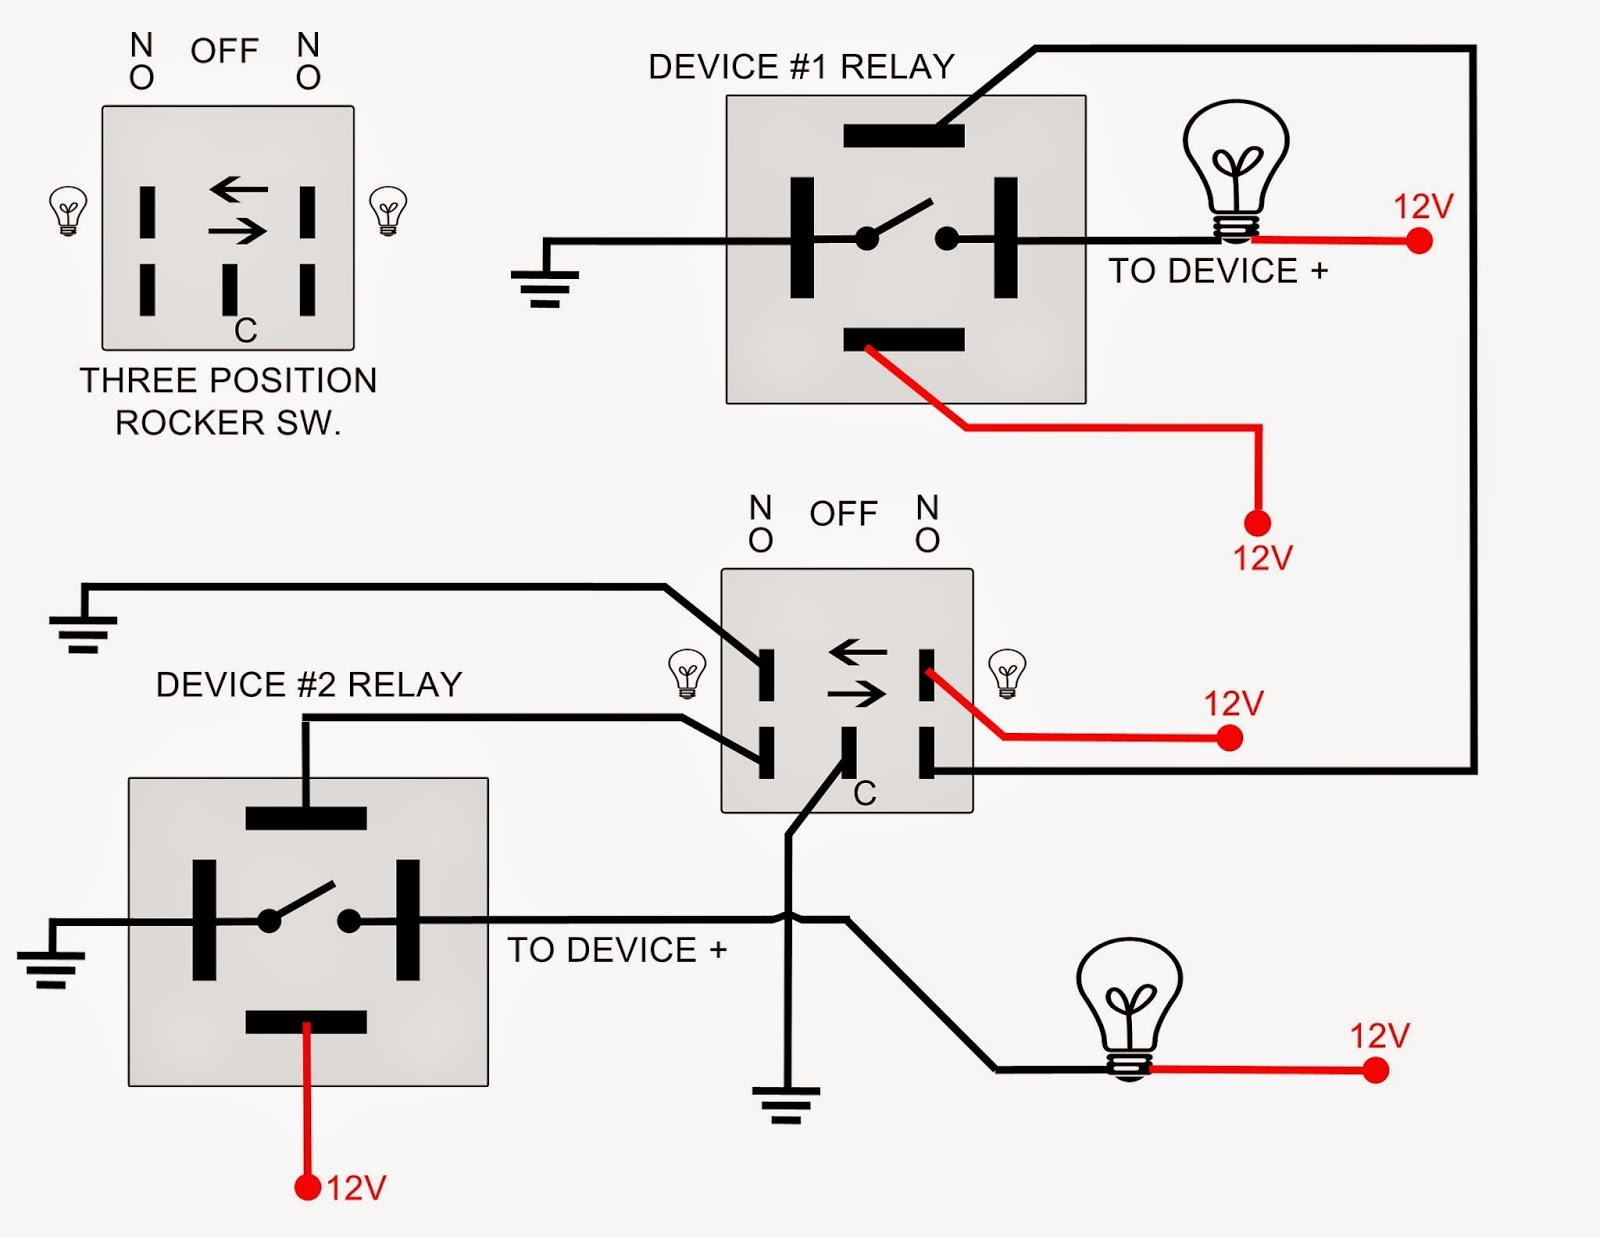 double throw safety switch wiring diagram 4 pole wiring